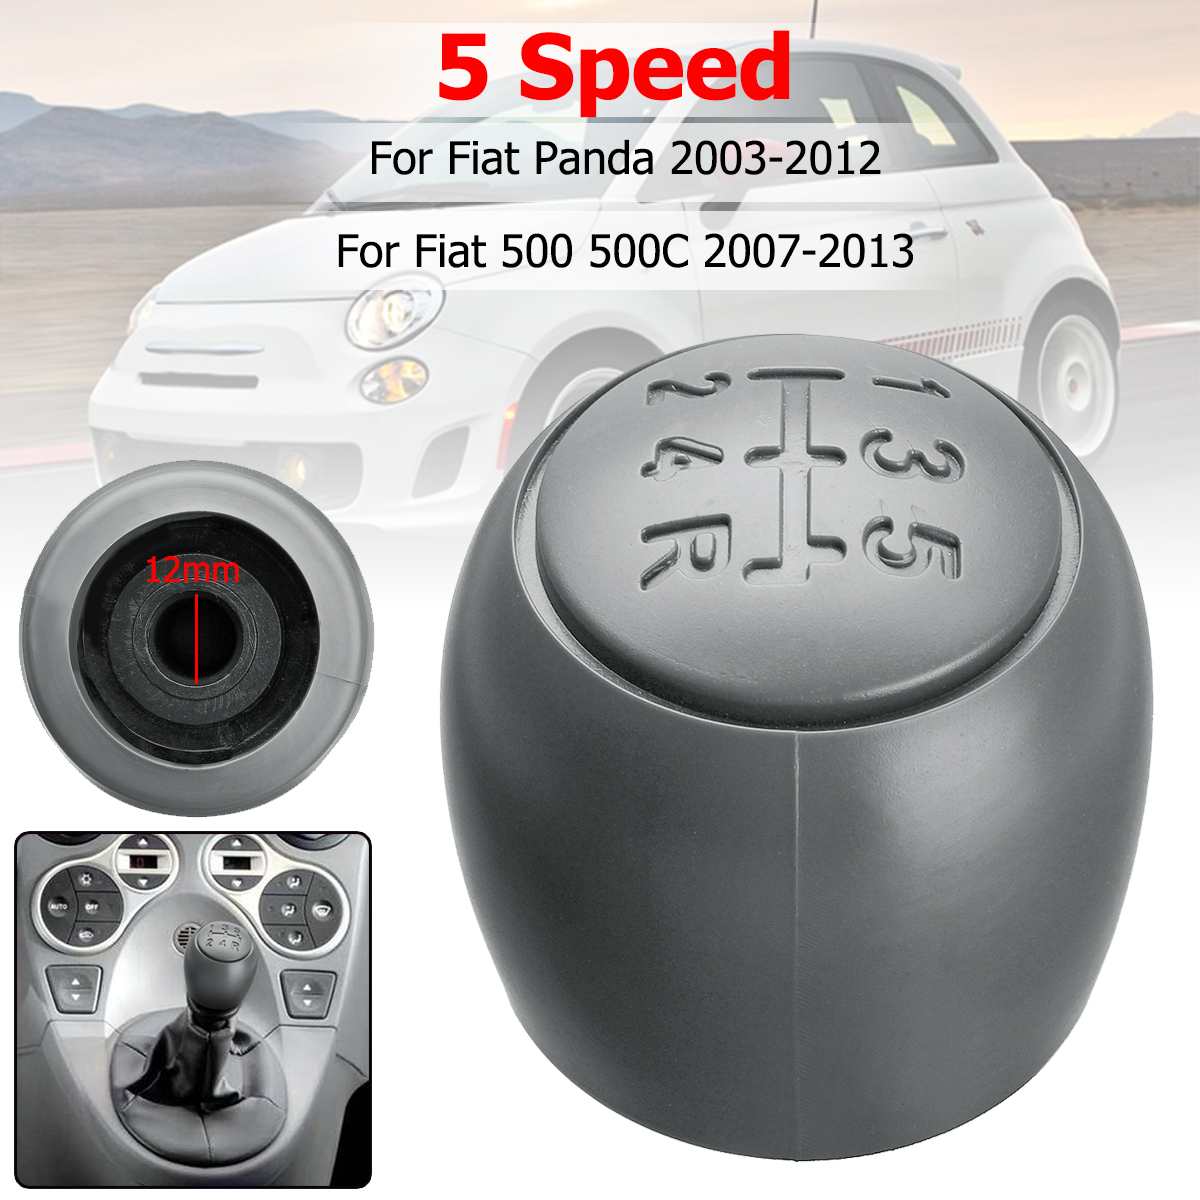 цена на 5 Speed Manual Car Gear Shift Knob Head Auto Shifter Knob For Fiat 500 500c Panda 2003-2012